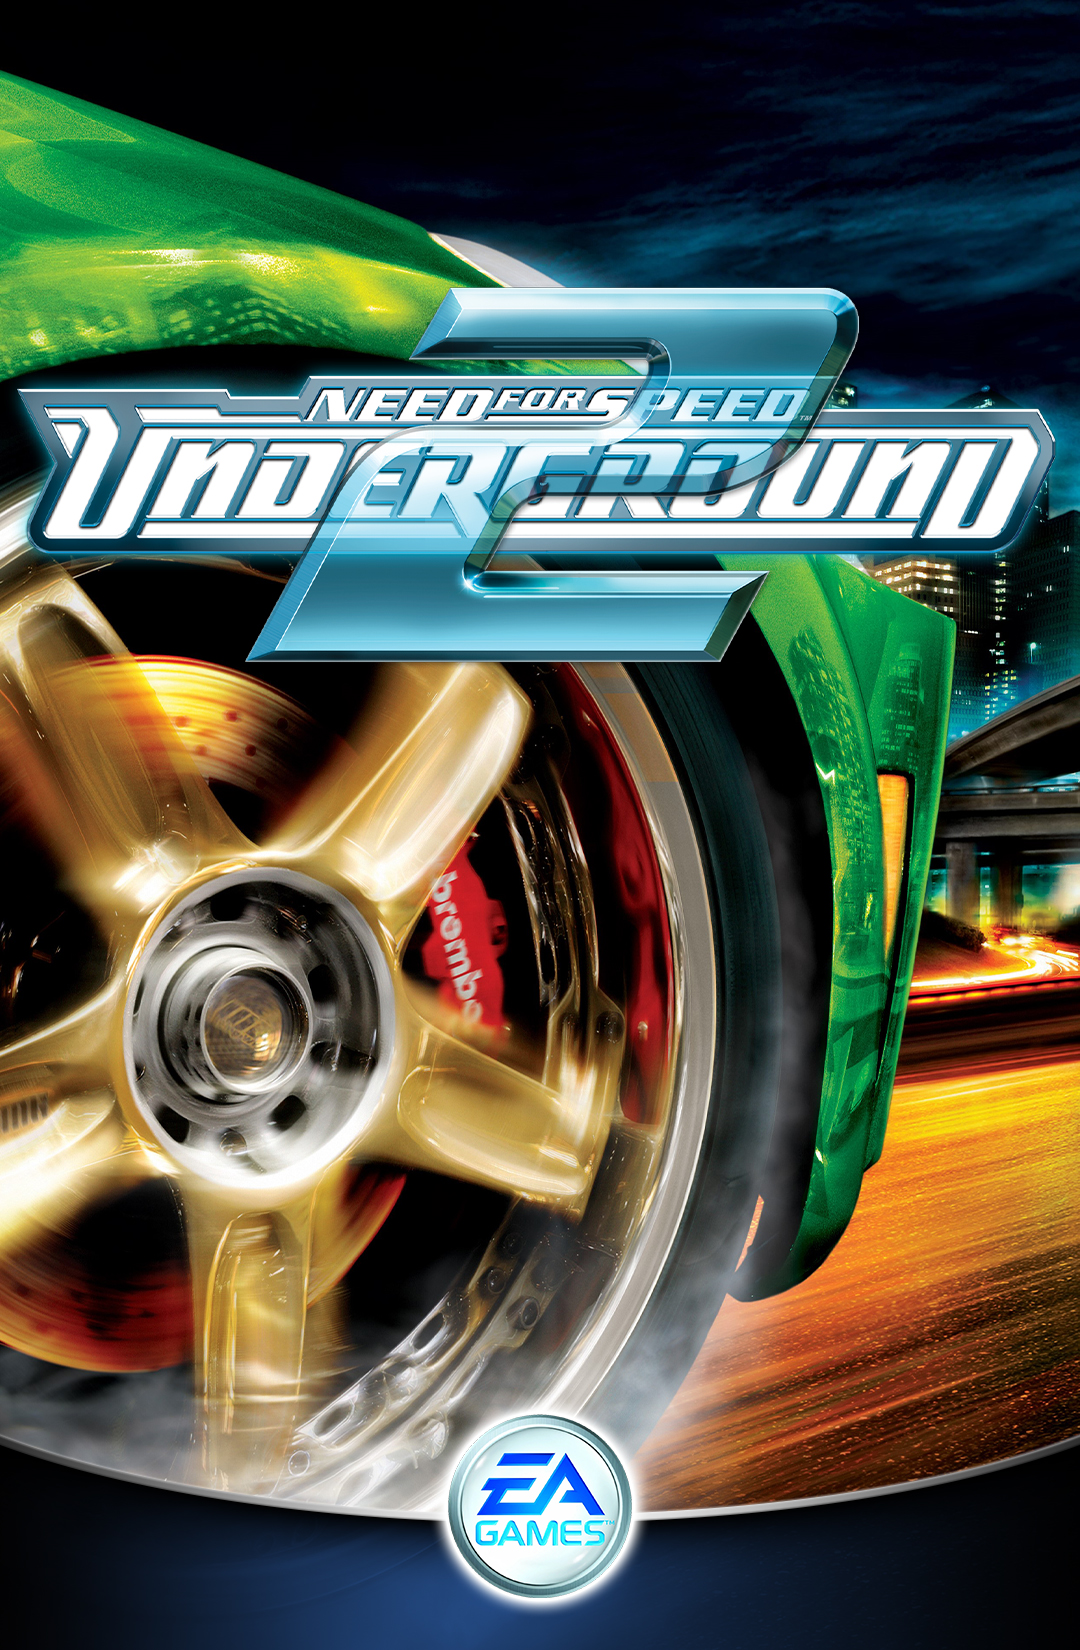 Need for Speed: Underground 2 | Need for Speed Wiki | FANDOM powered